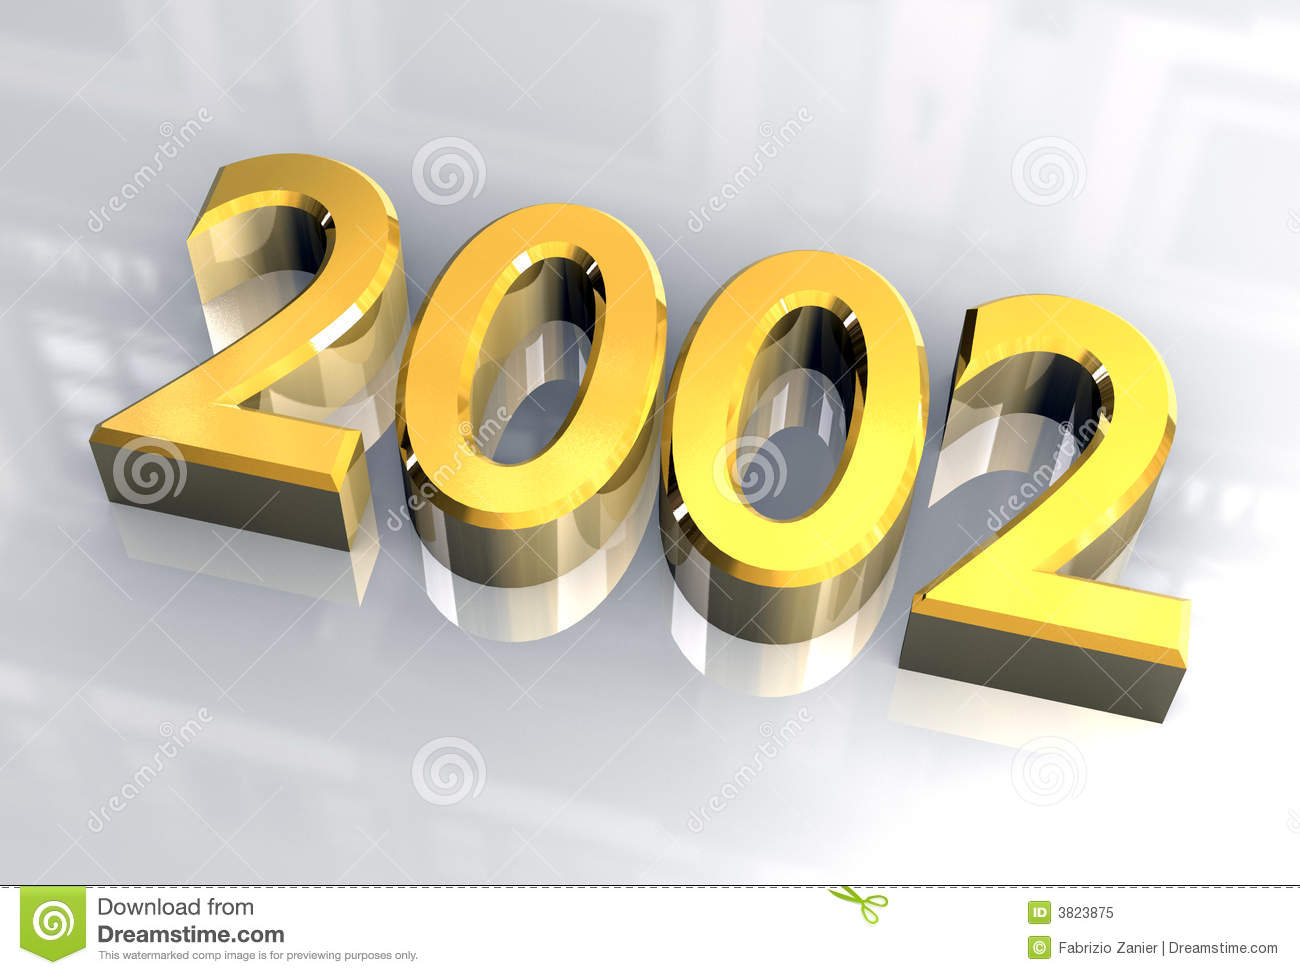 New year 2002 in gold (3D